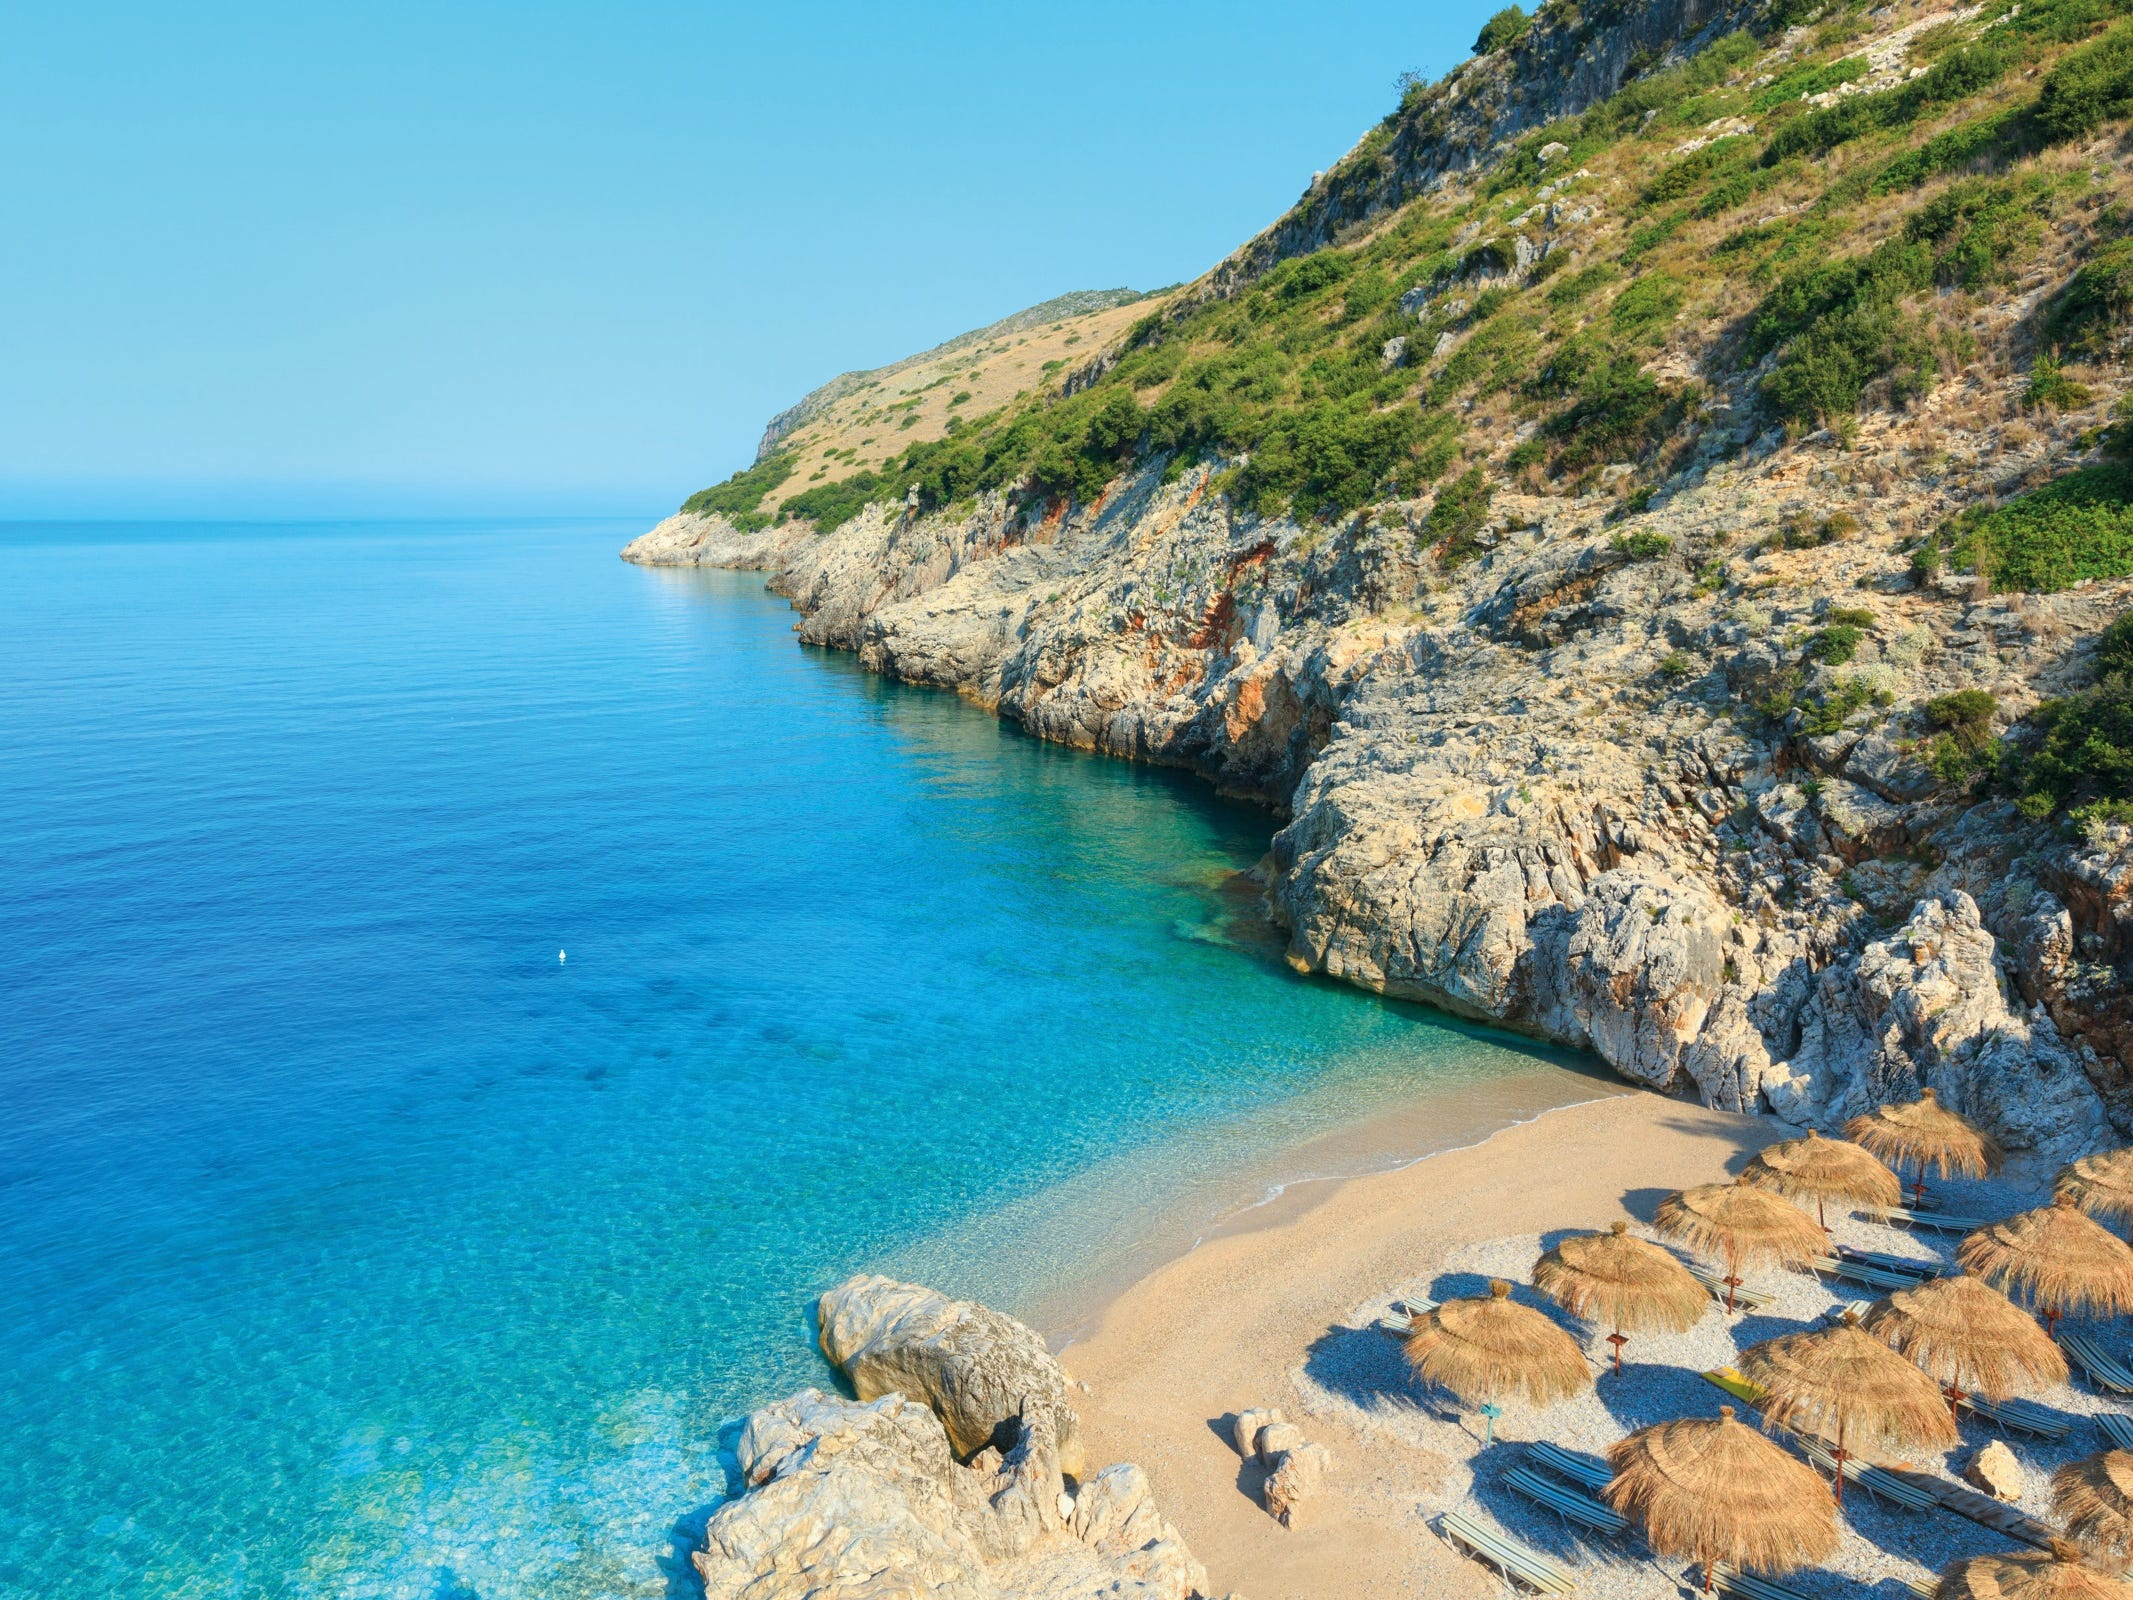 No. 8 on the list of best value places to visit in 2019 is Albania.